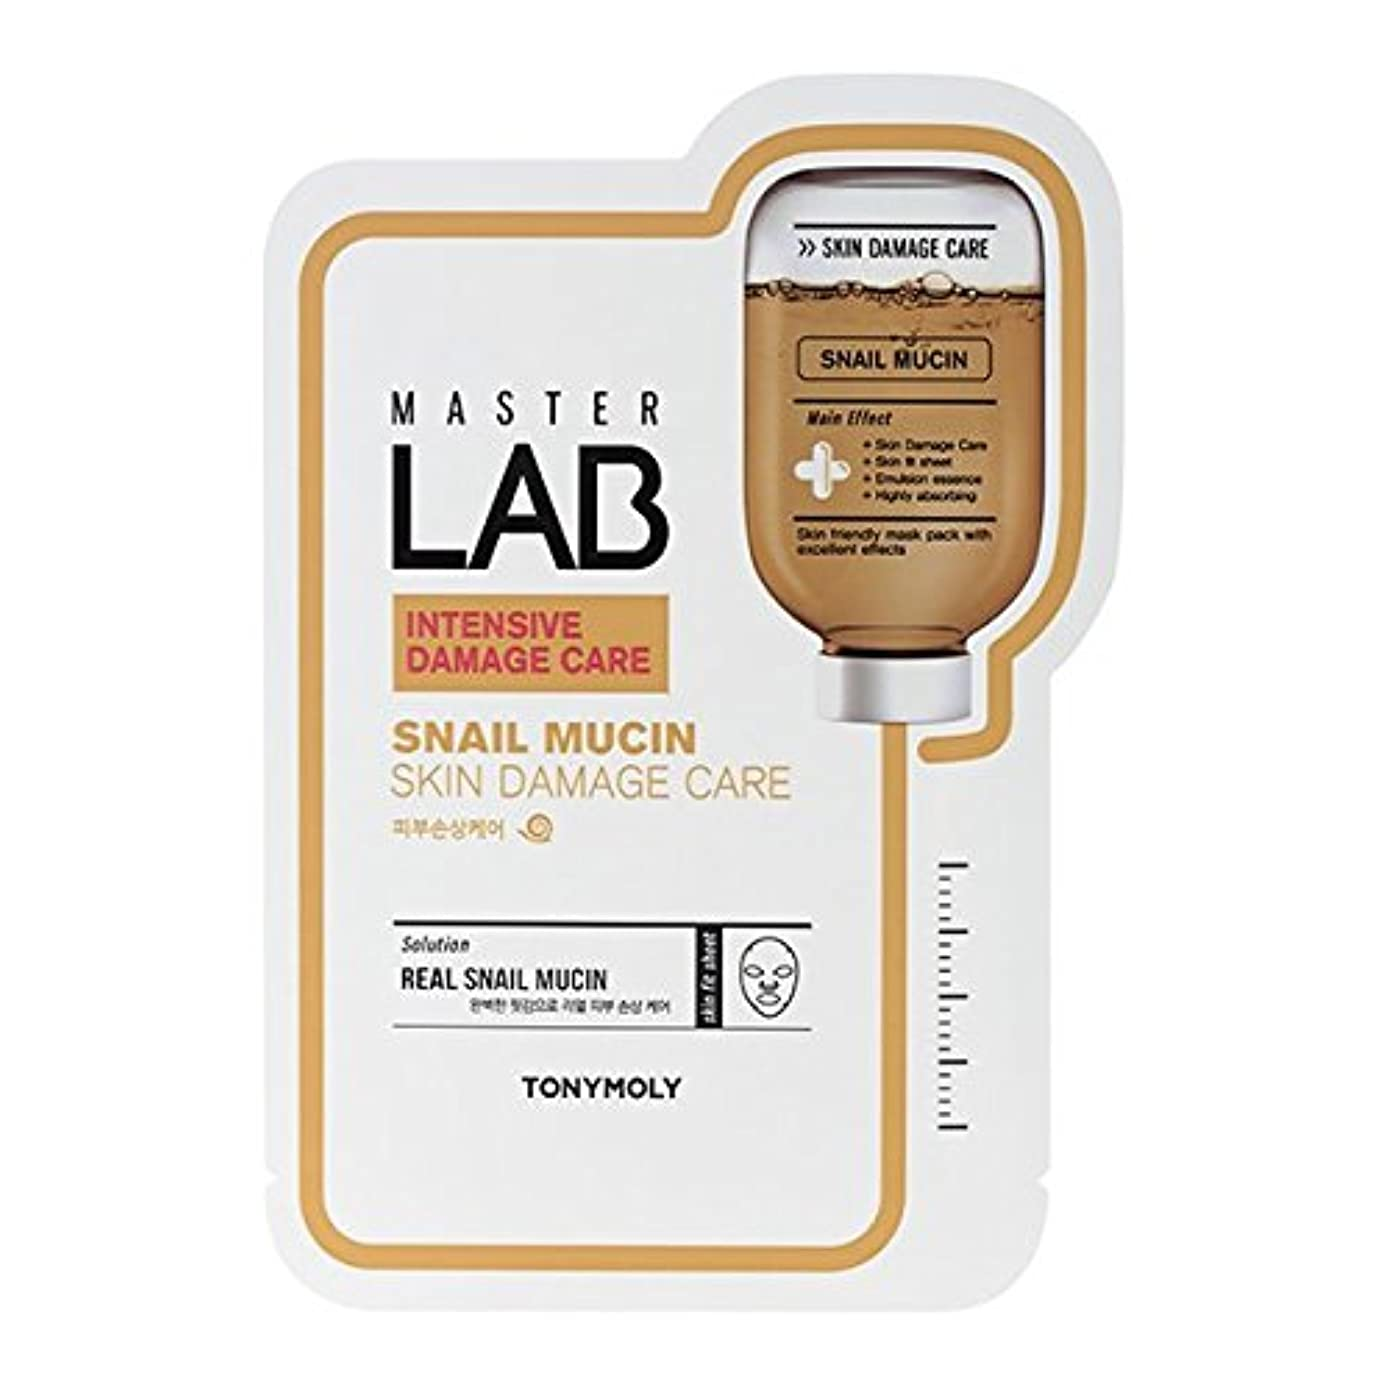 サイレン国立ち寄るTONYMOLY Master Lab Mask Snail Mucin (Skin Damage Care) (並行輸入品)